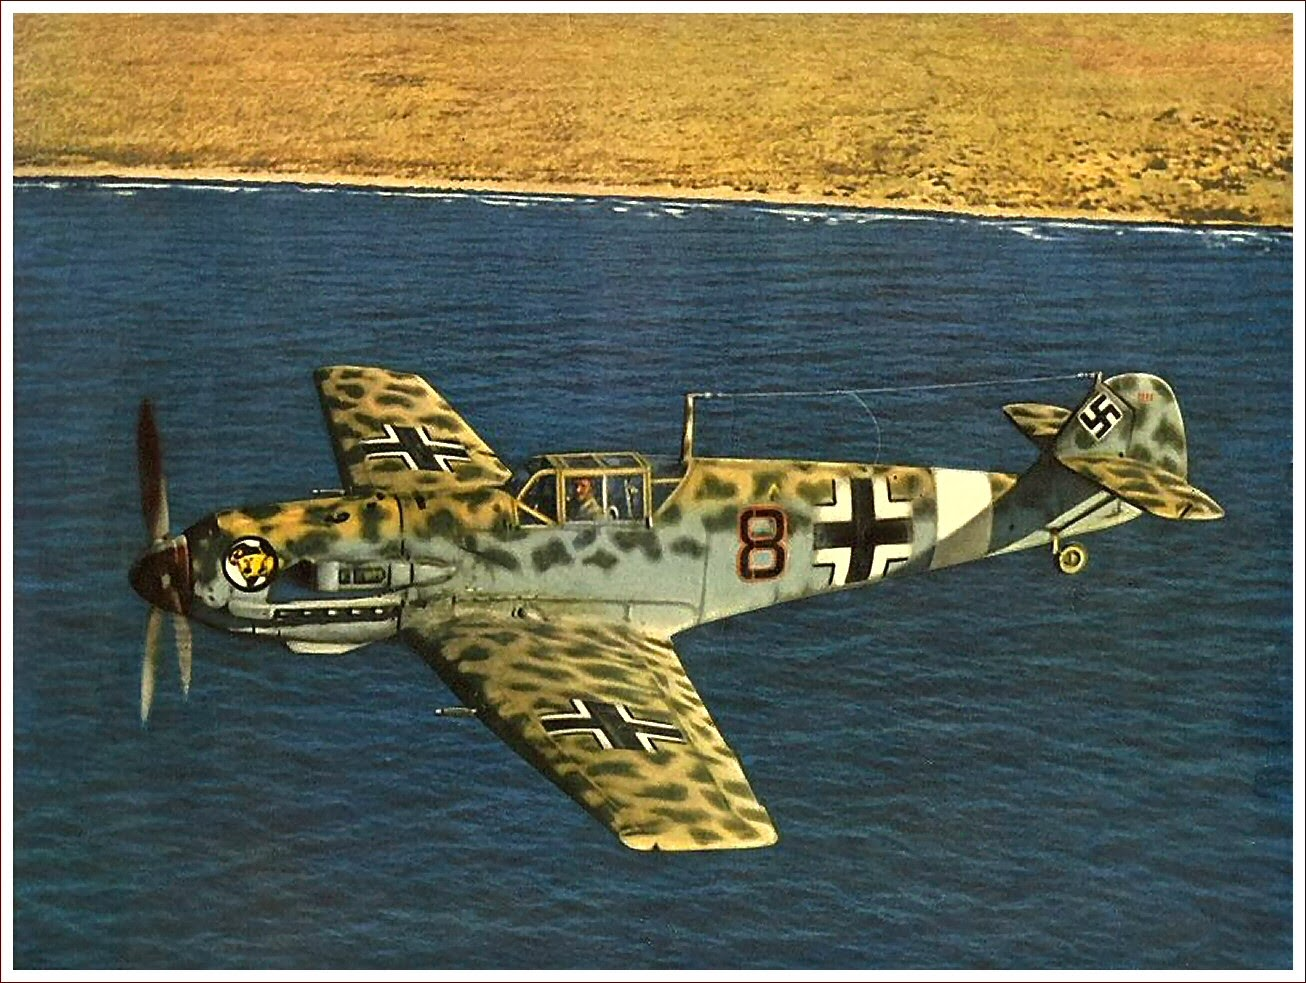 c57a1031 The Messerschmitt Bf 109, often called Me 109 (most often by Allied pilots  and aircrew), was a German World War II fighter aircraft designed by Willy  ...